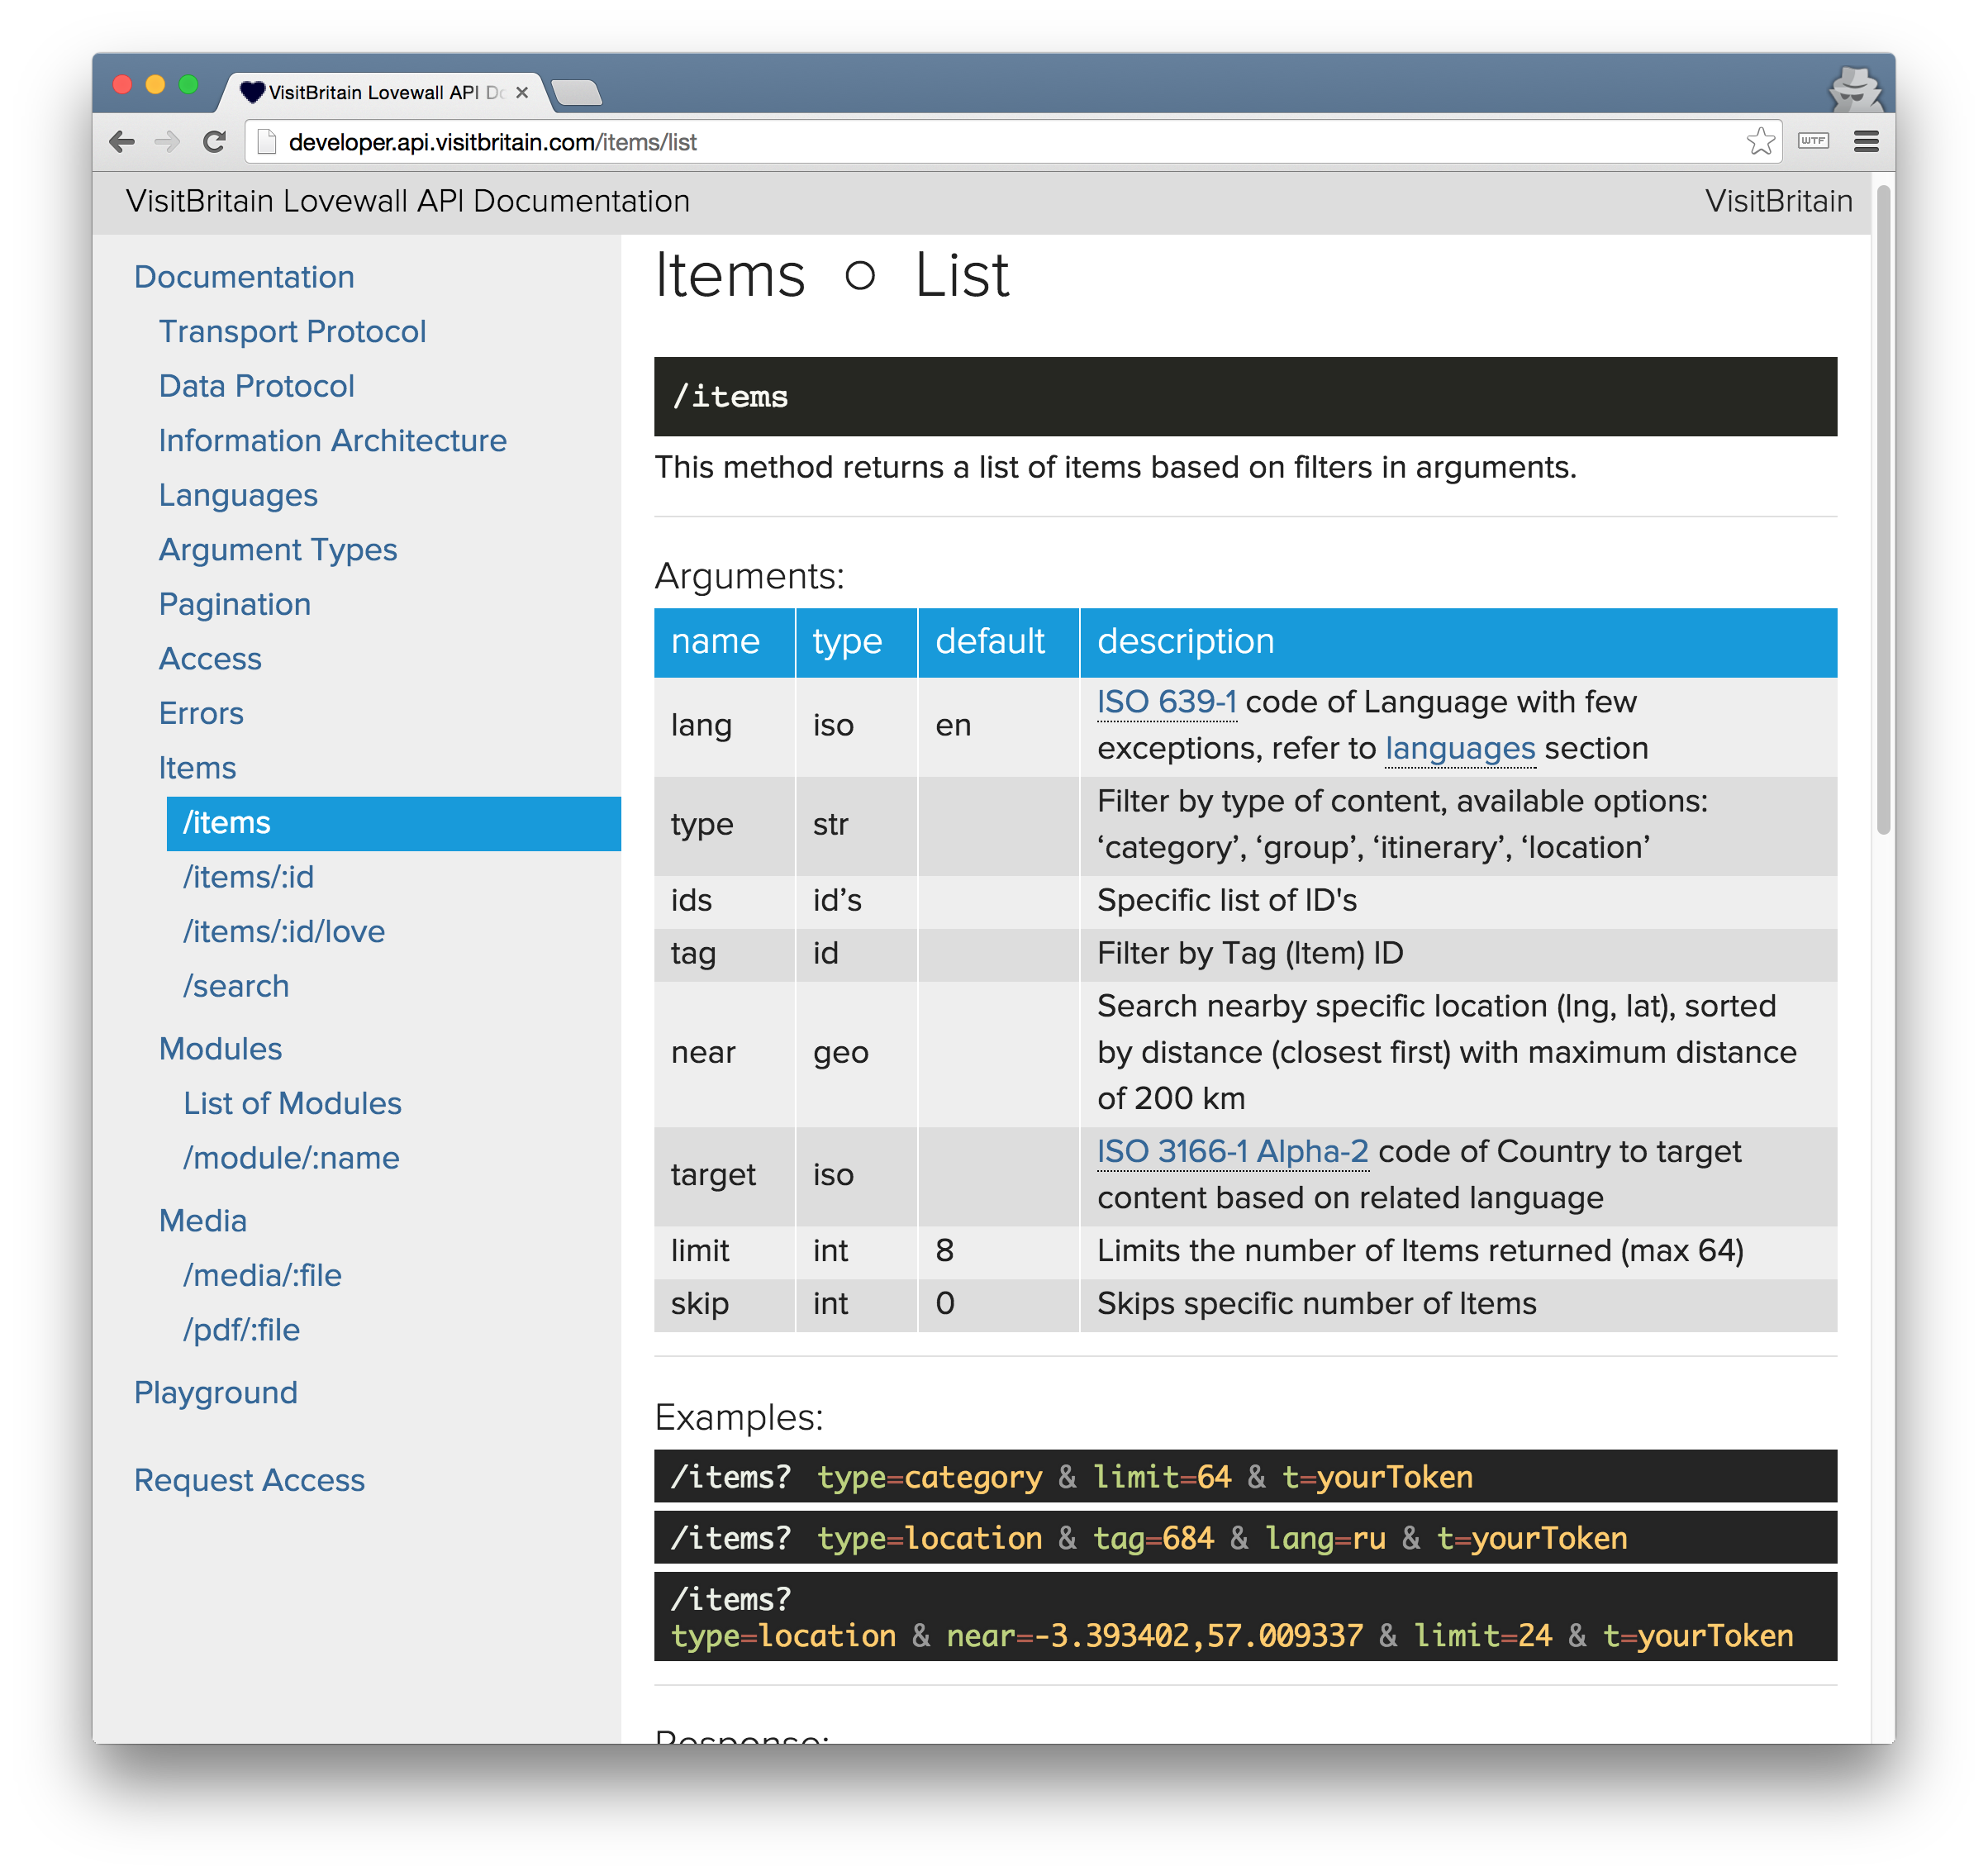 screenshot of documentation page of /items resource of visit Britain REST API